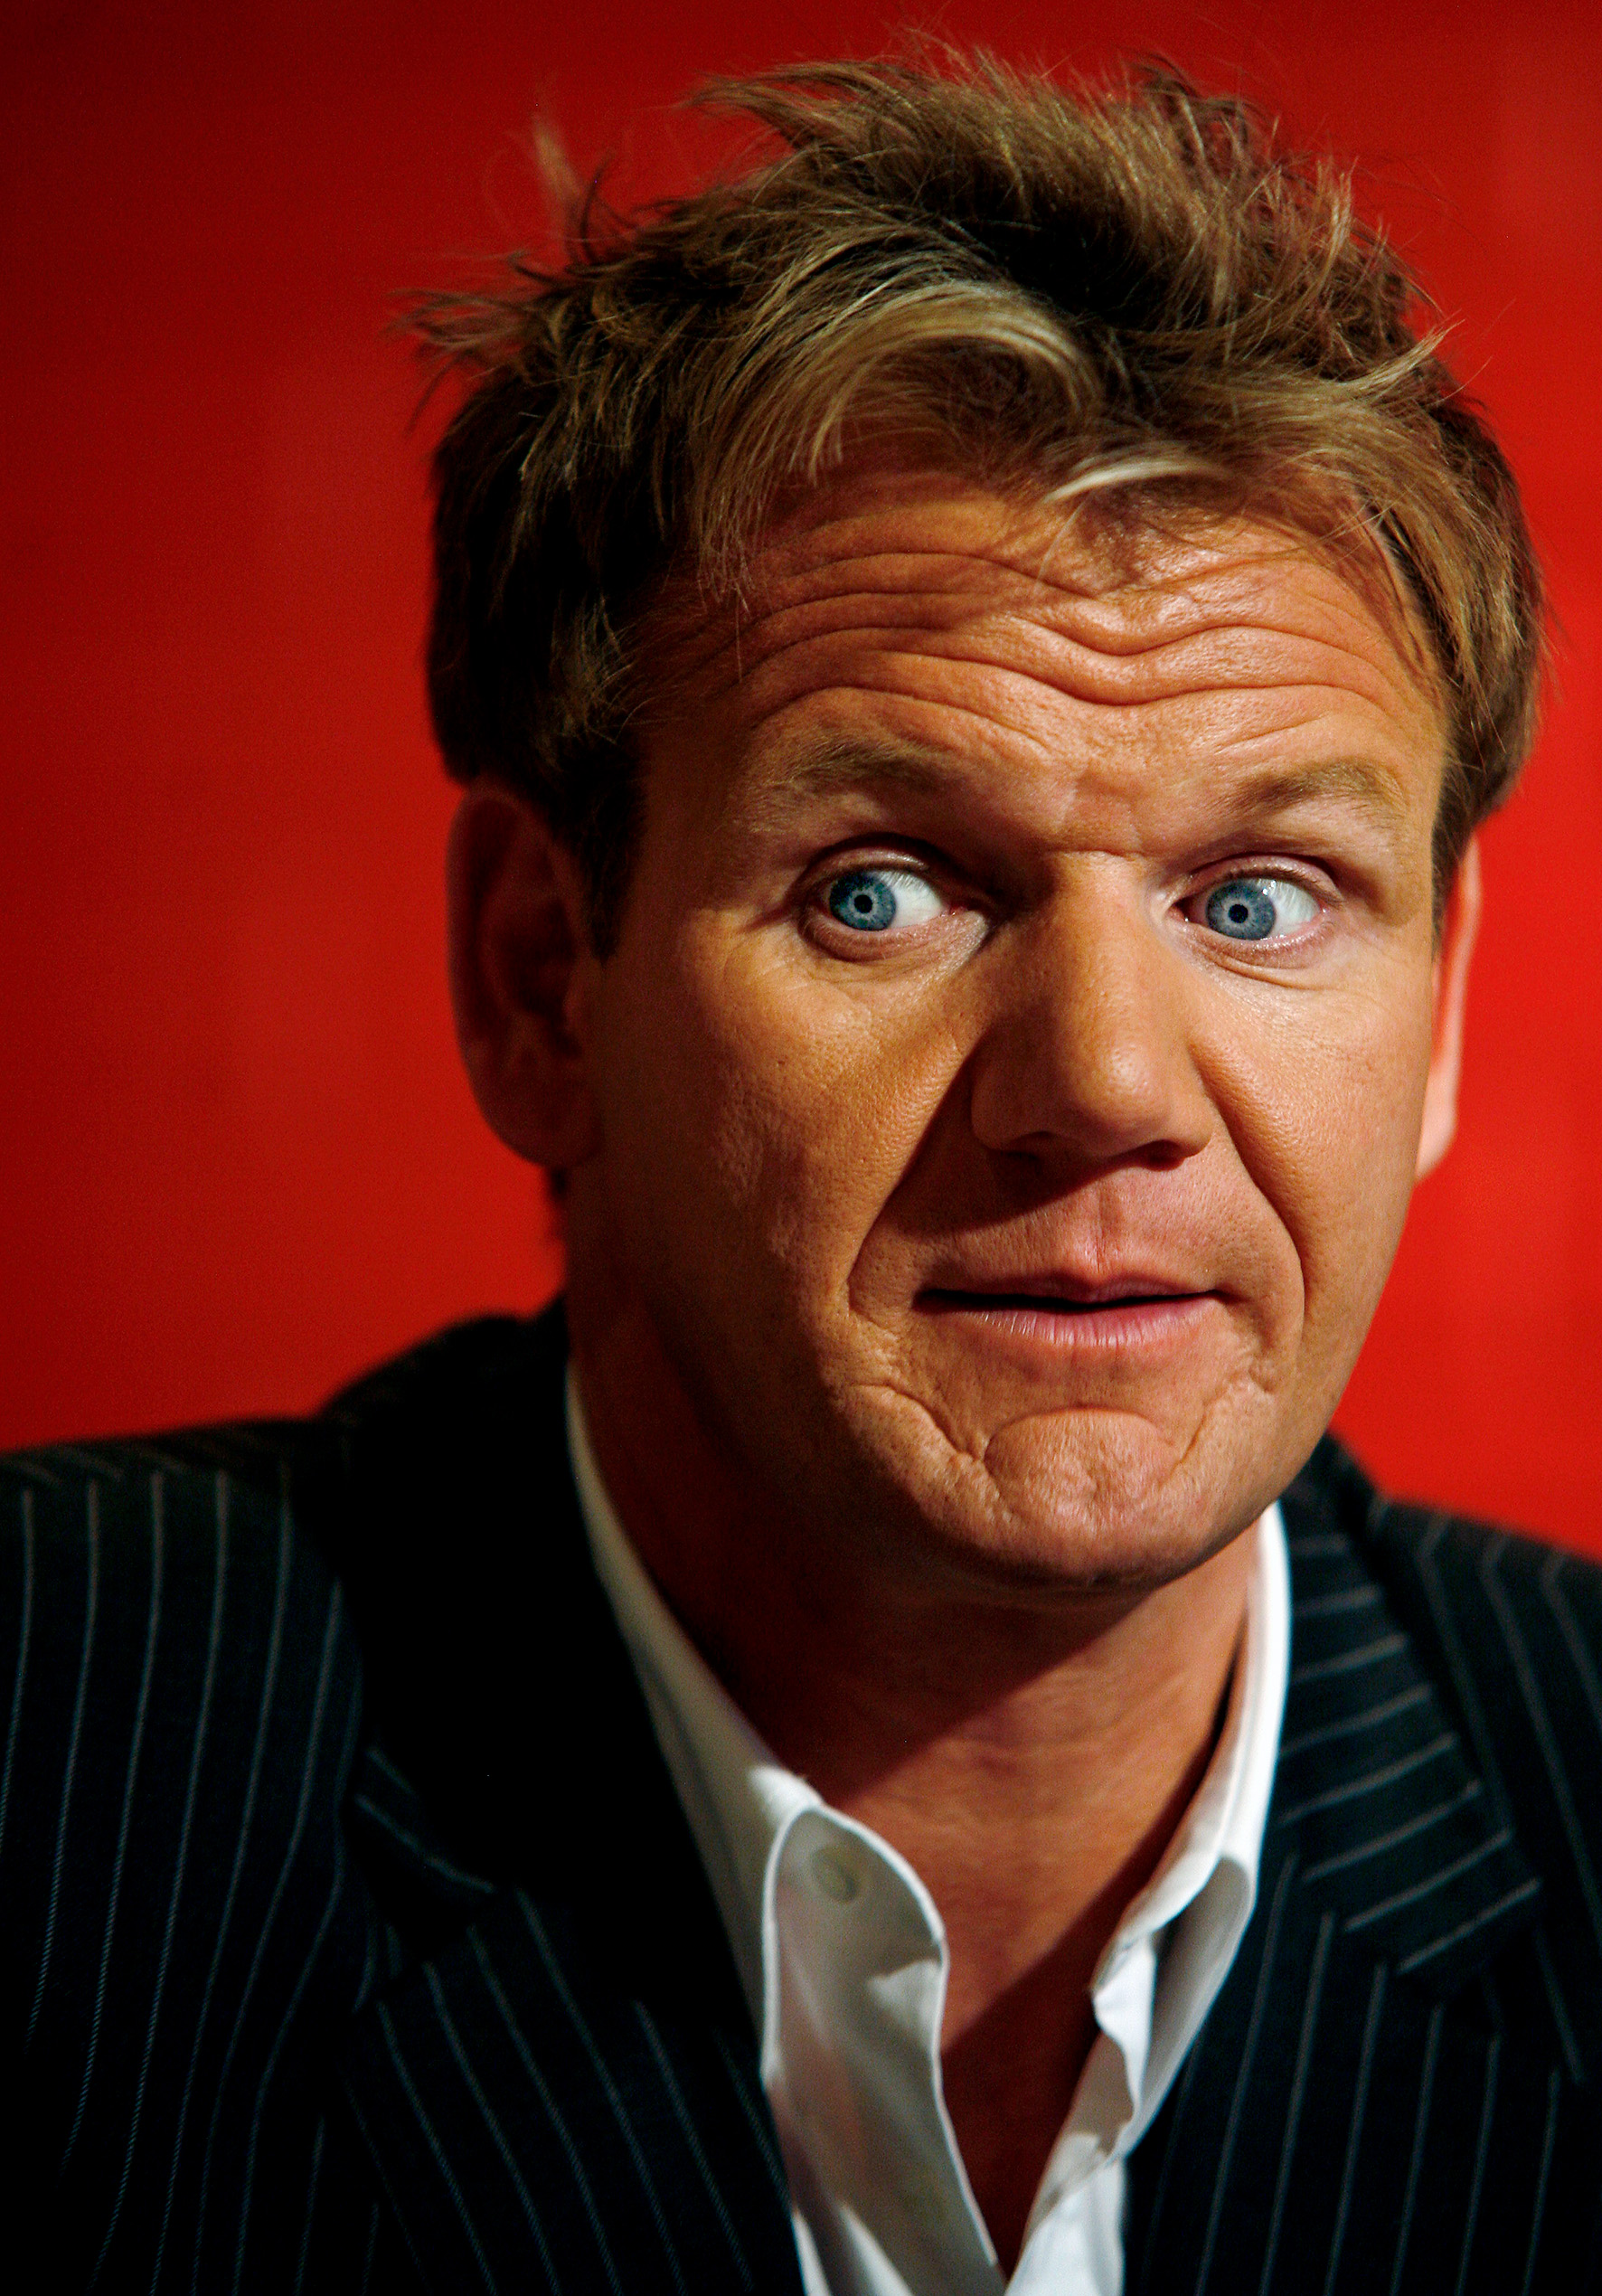 Chef Portraits | Celebrity chef Gordon Ramsay | Helsinki, 2007